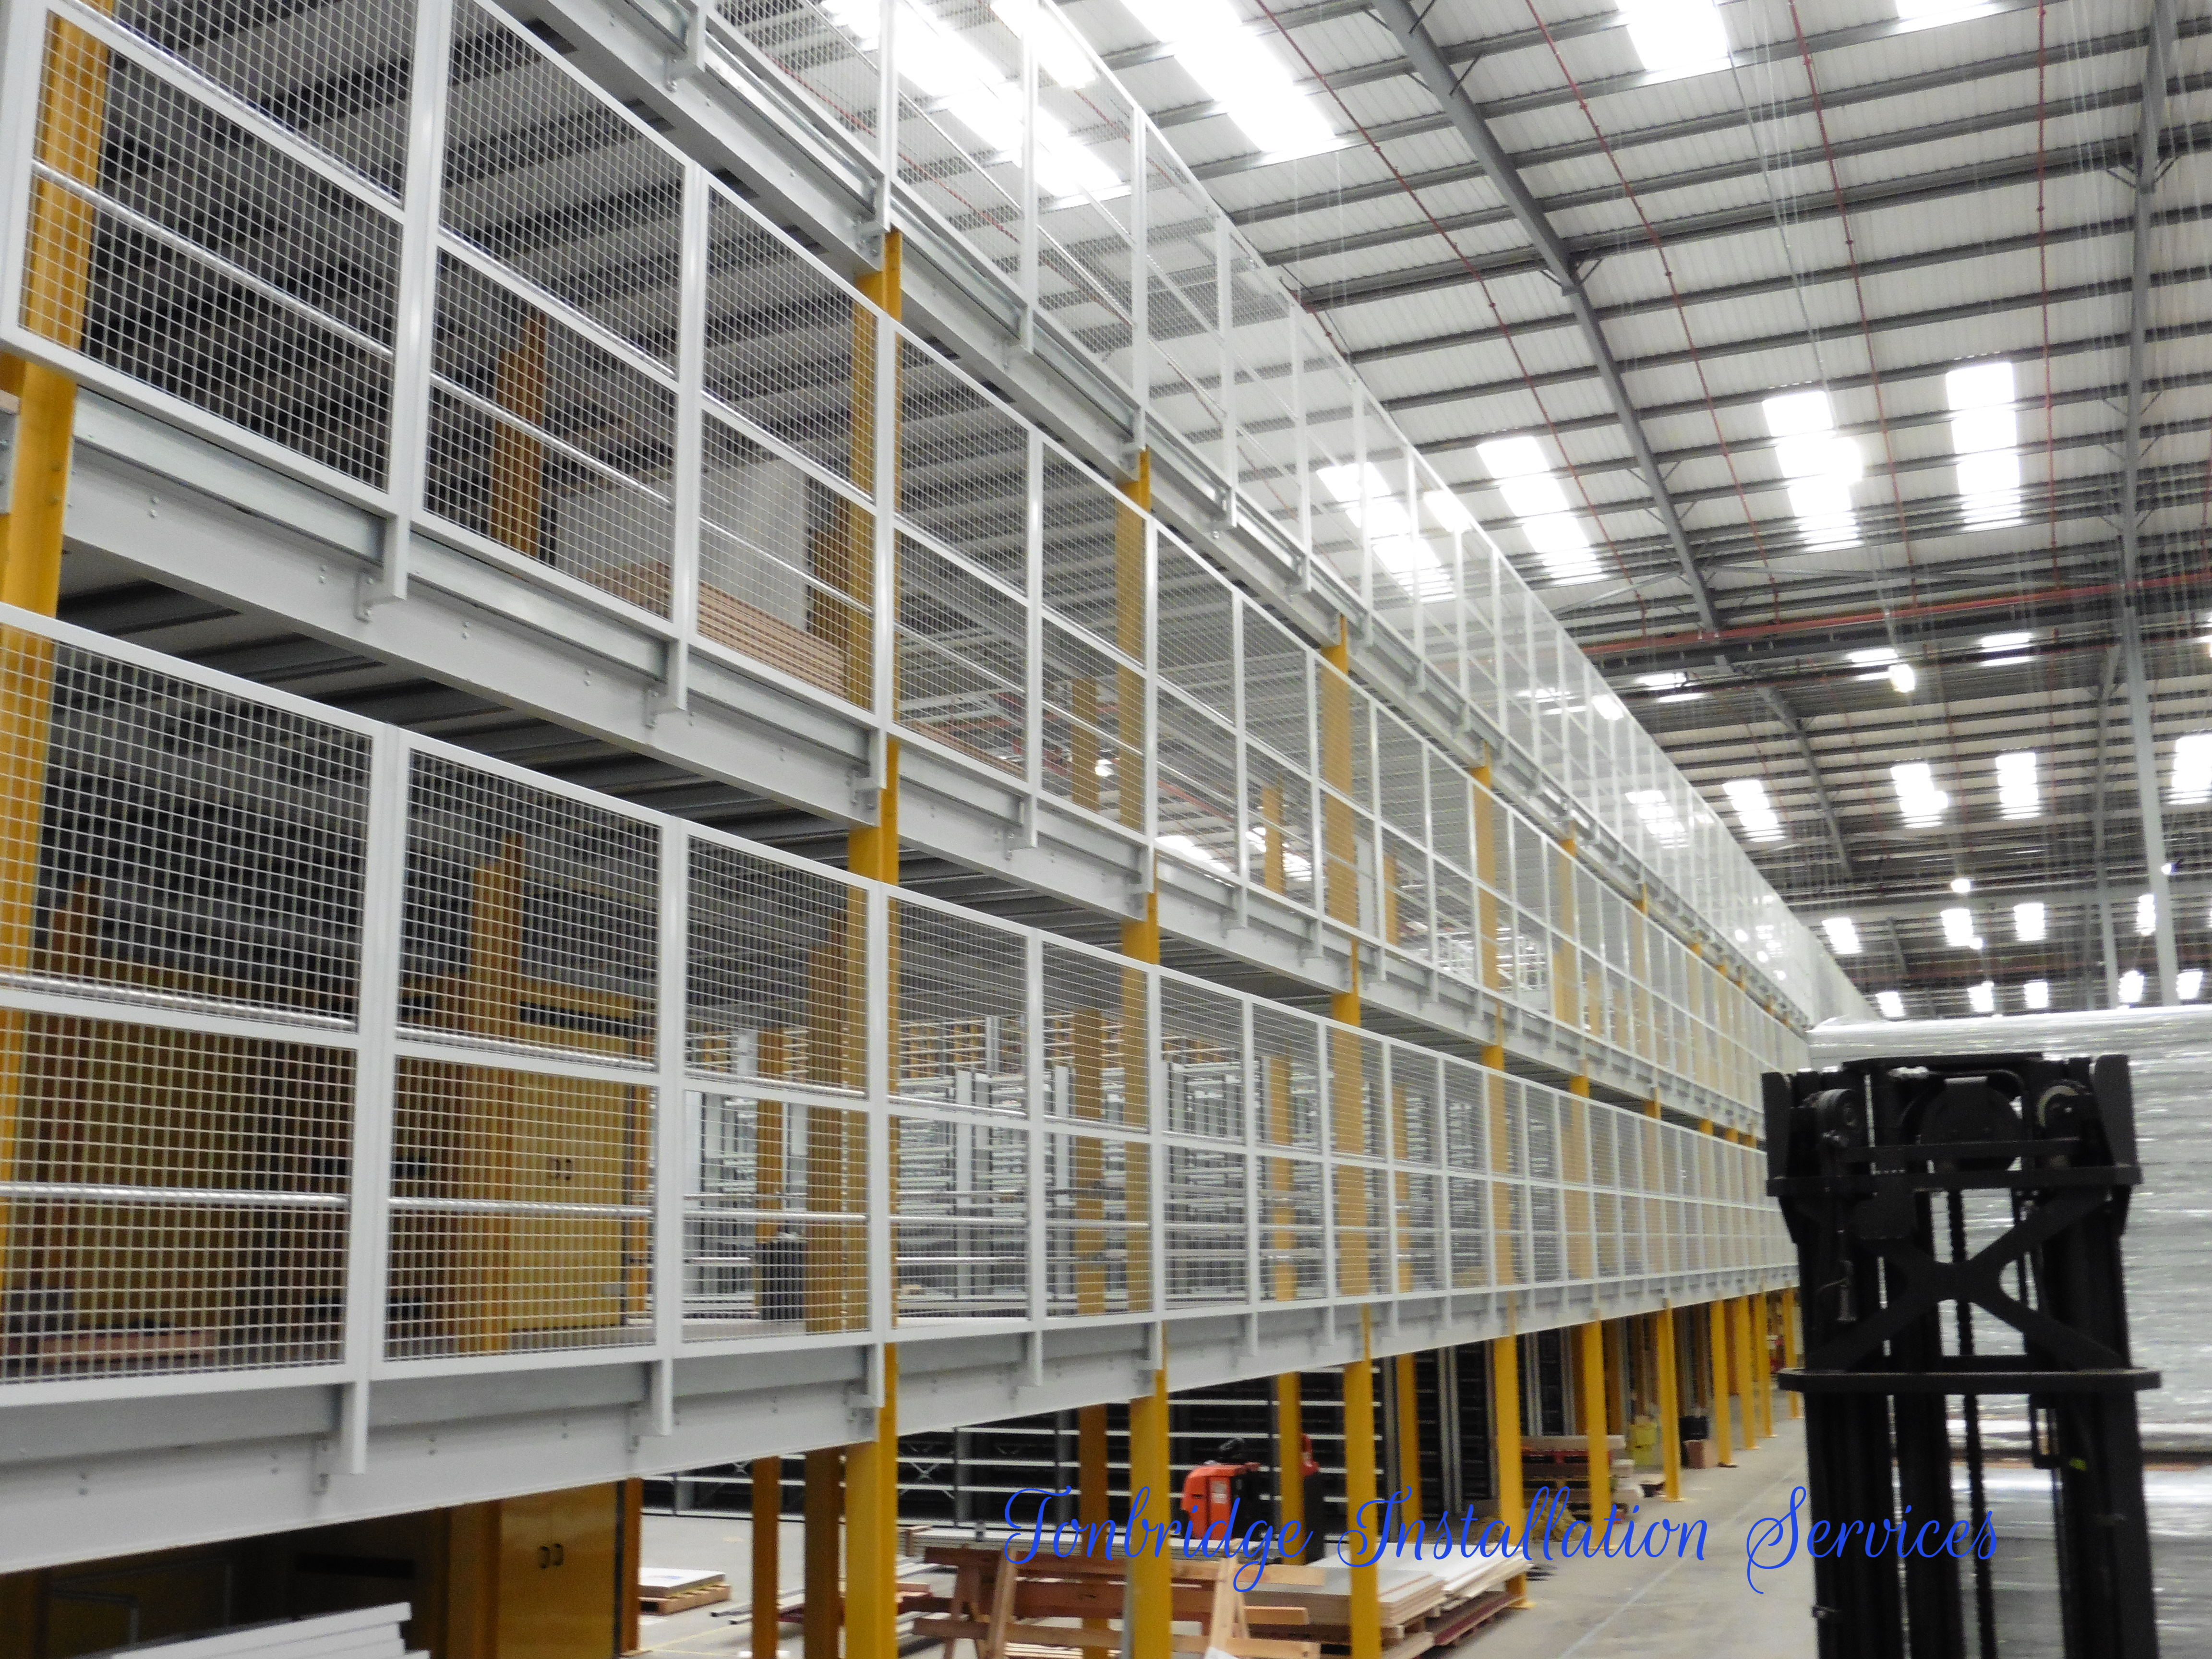 Mezzanine Floors, Mezzanine Floor - Tonbridge Installation Services